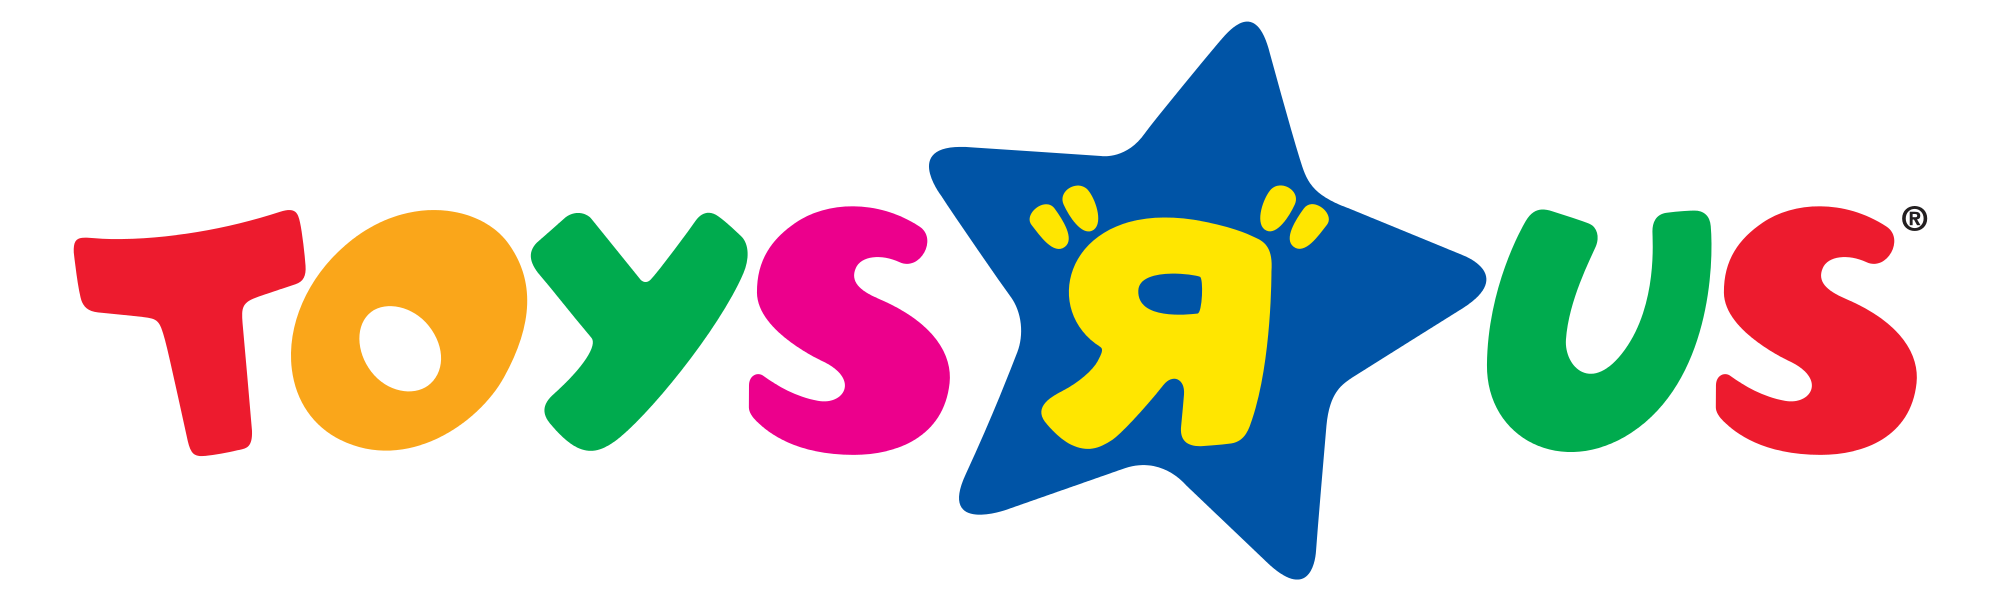 File toys r svg. Us clipart logo svg library stock